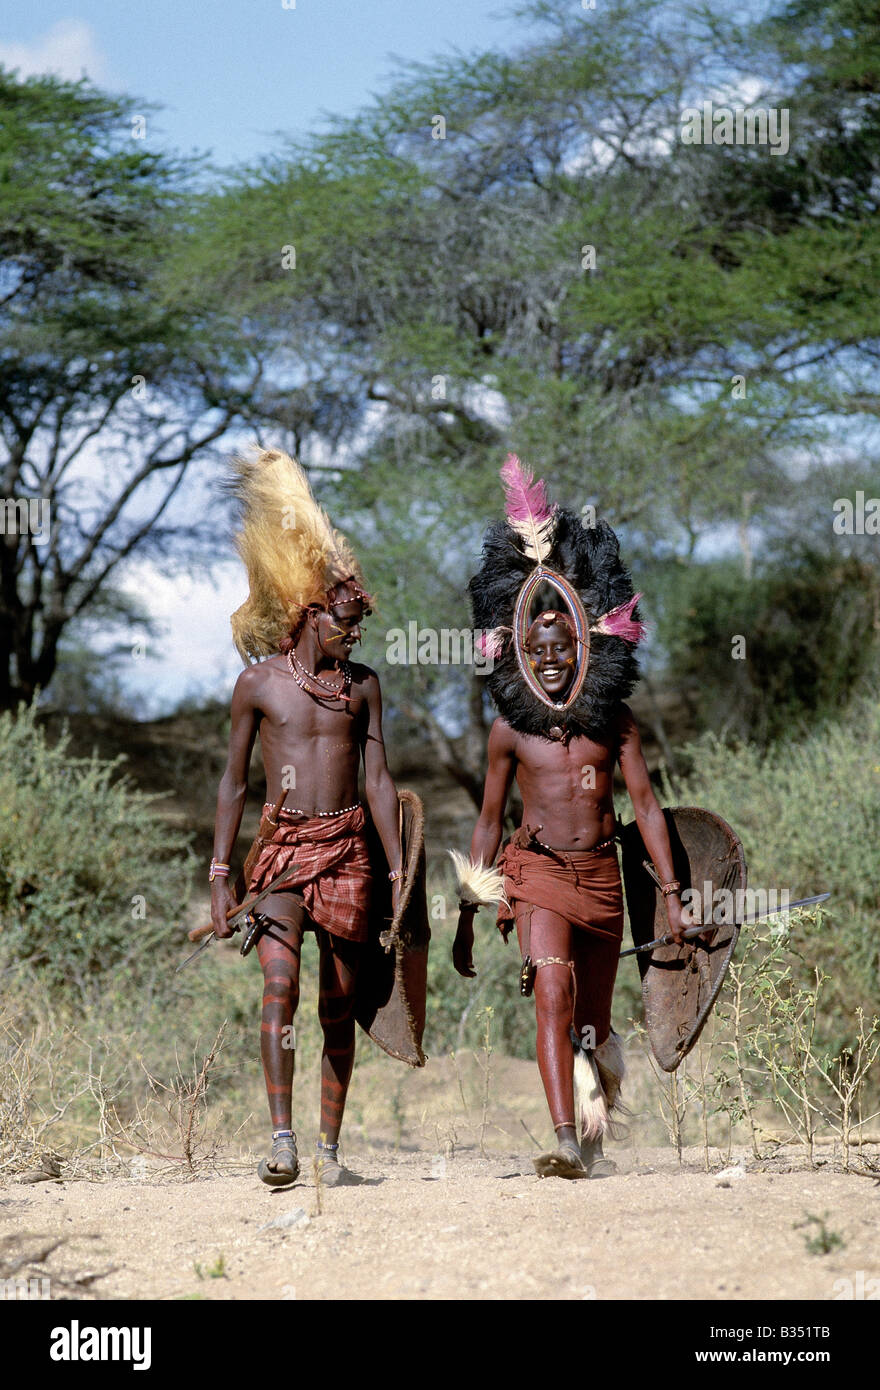 Kenya, Kajiado, lpartimaro. Two Maasai warriors in full regalia. The headress of the man on the left is made from - Stock Image